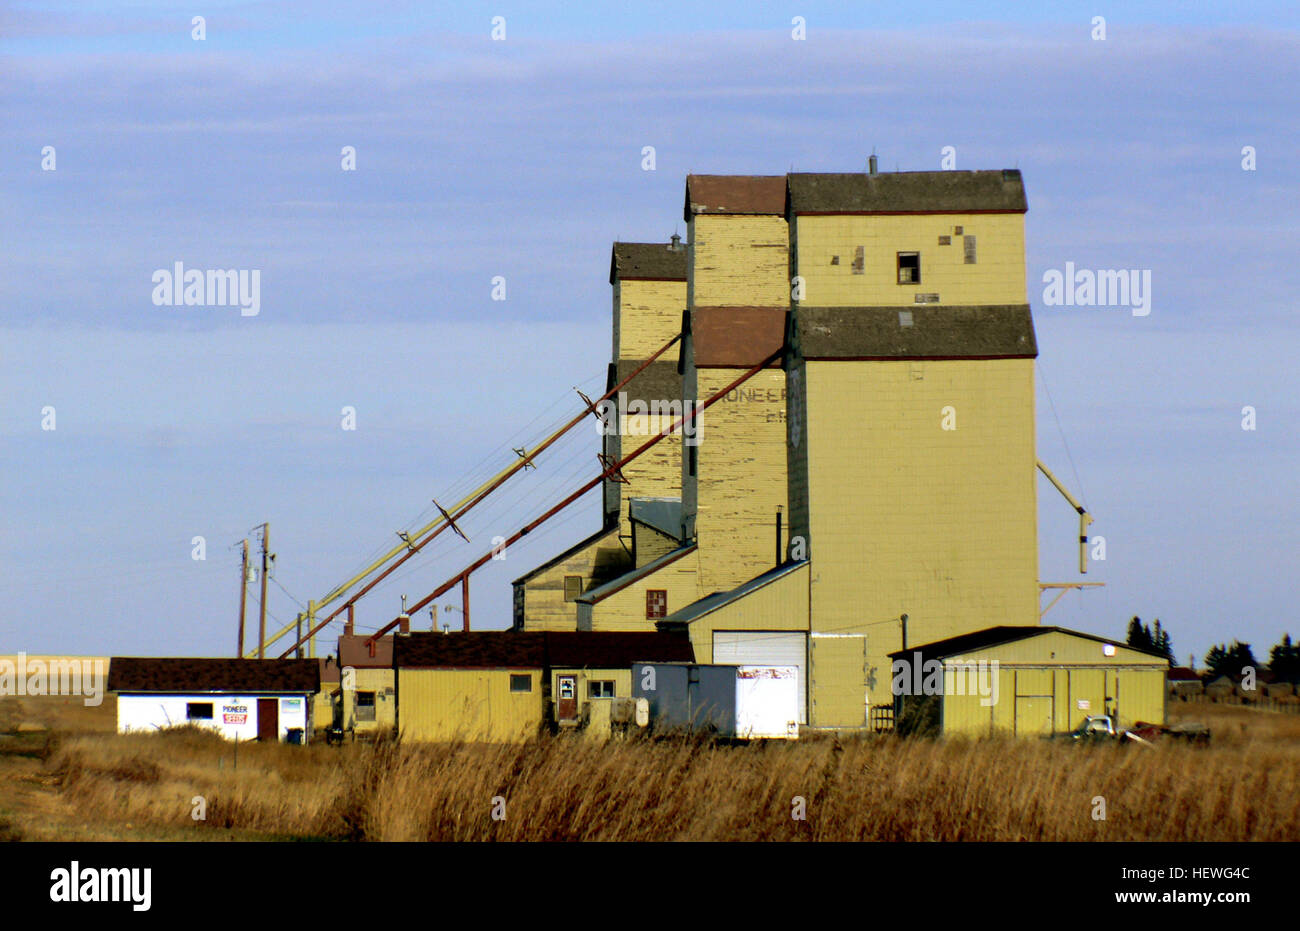 The remaining grain elevators along the abandoned Canadian Pacific Railway tracks in Mossleigh, Alberta. A farm - Stock Image